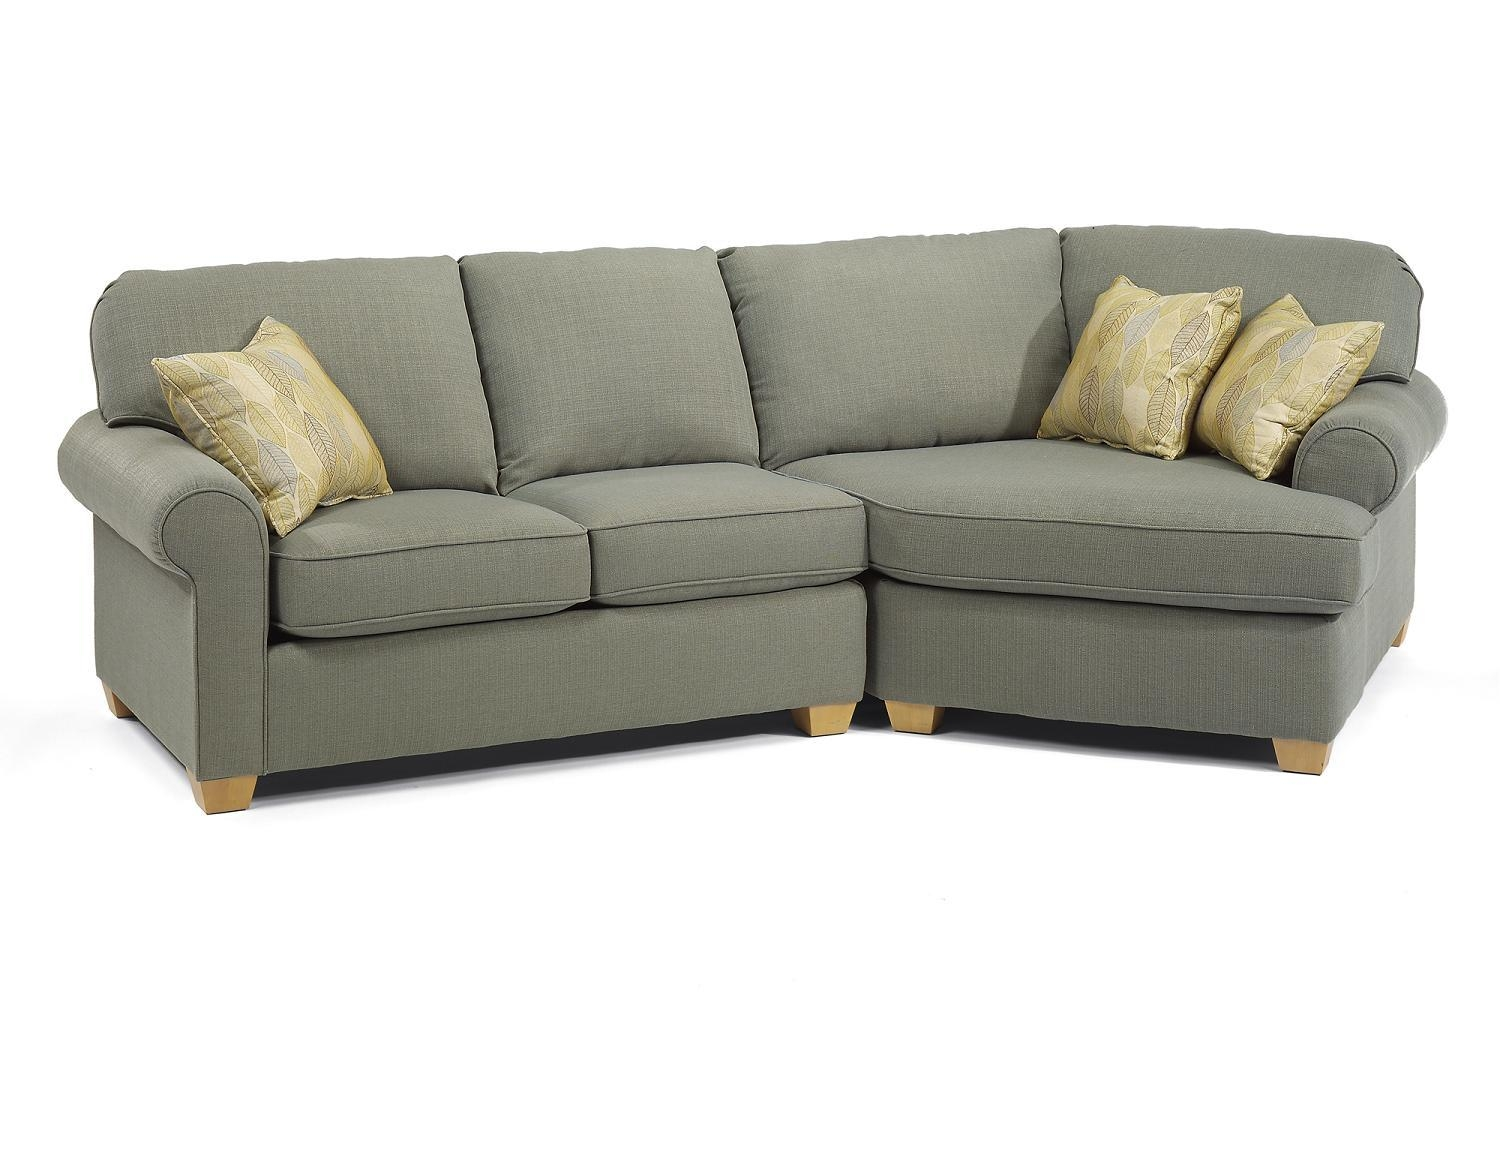 Featured Image of Angled Chaise Sofa